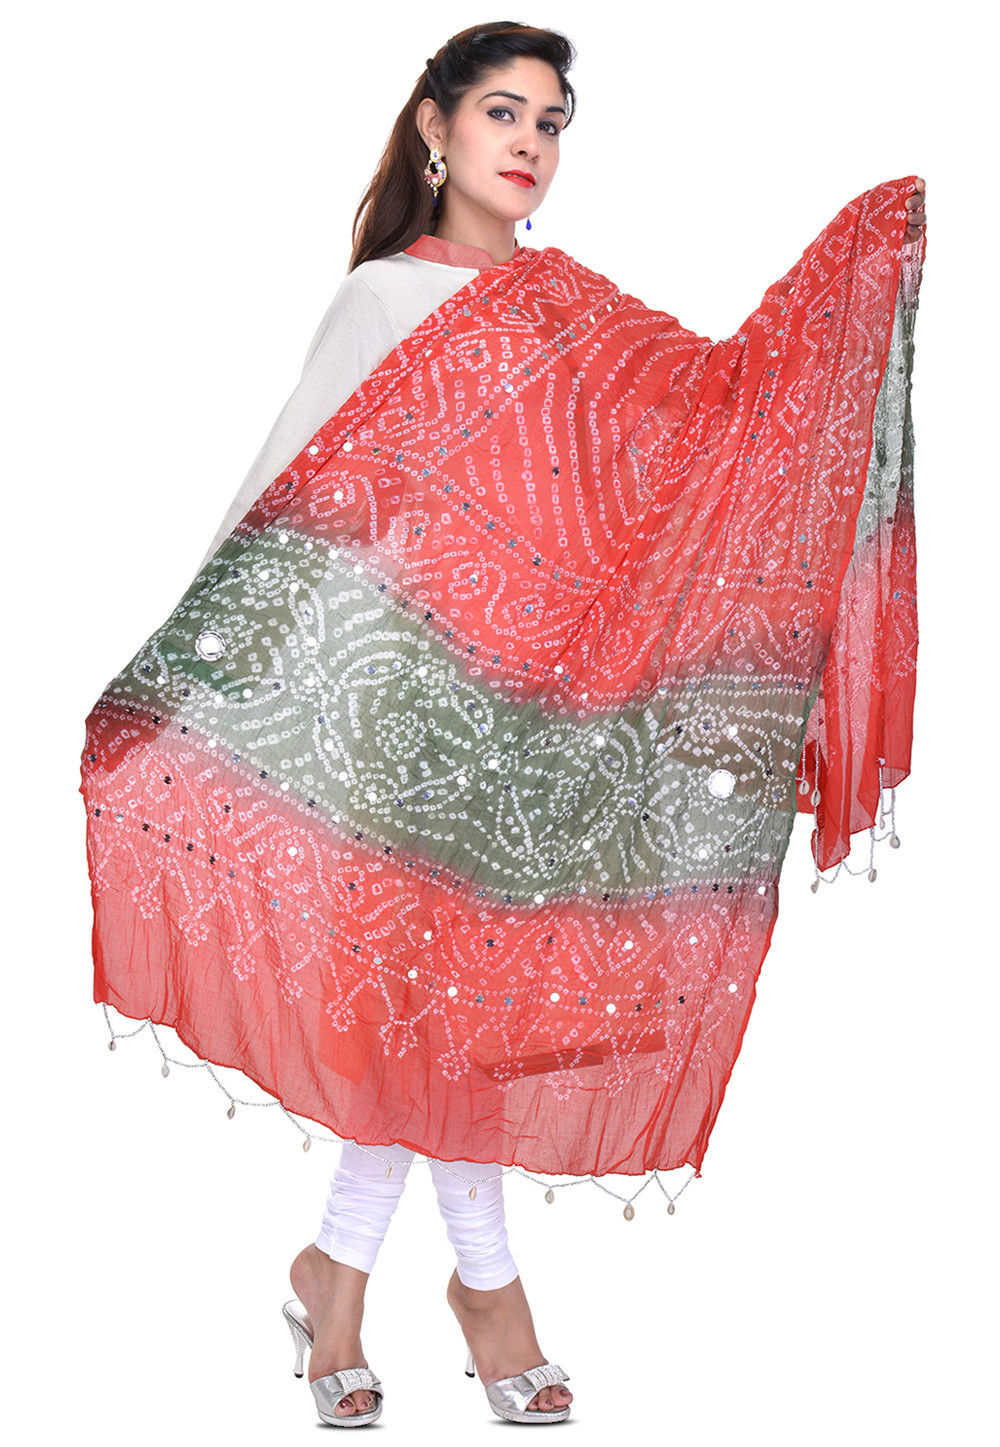 Bandhani Printed Cotton Dupatta in Red and Grey